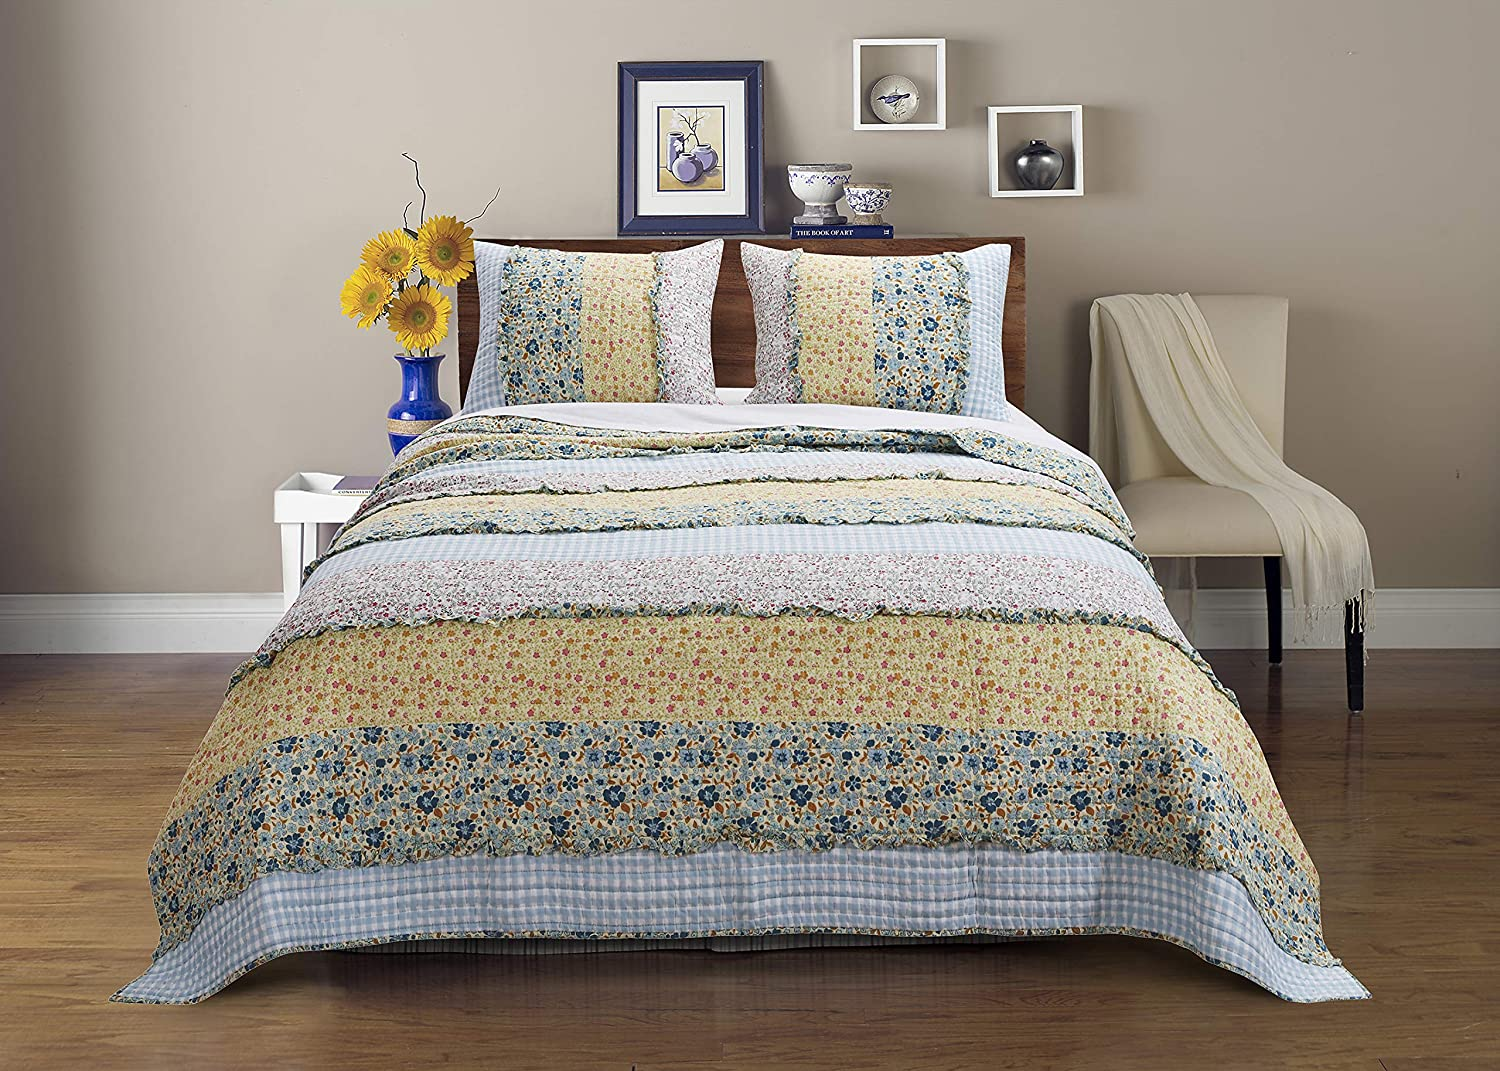 Barefoot Bungalow Ditsy Ruffle Quilt Set, Full/Queen, Calico